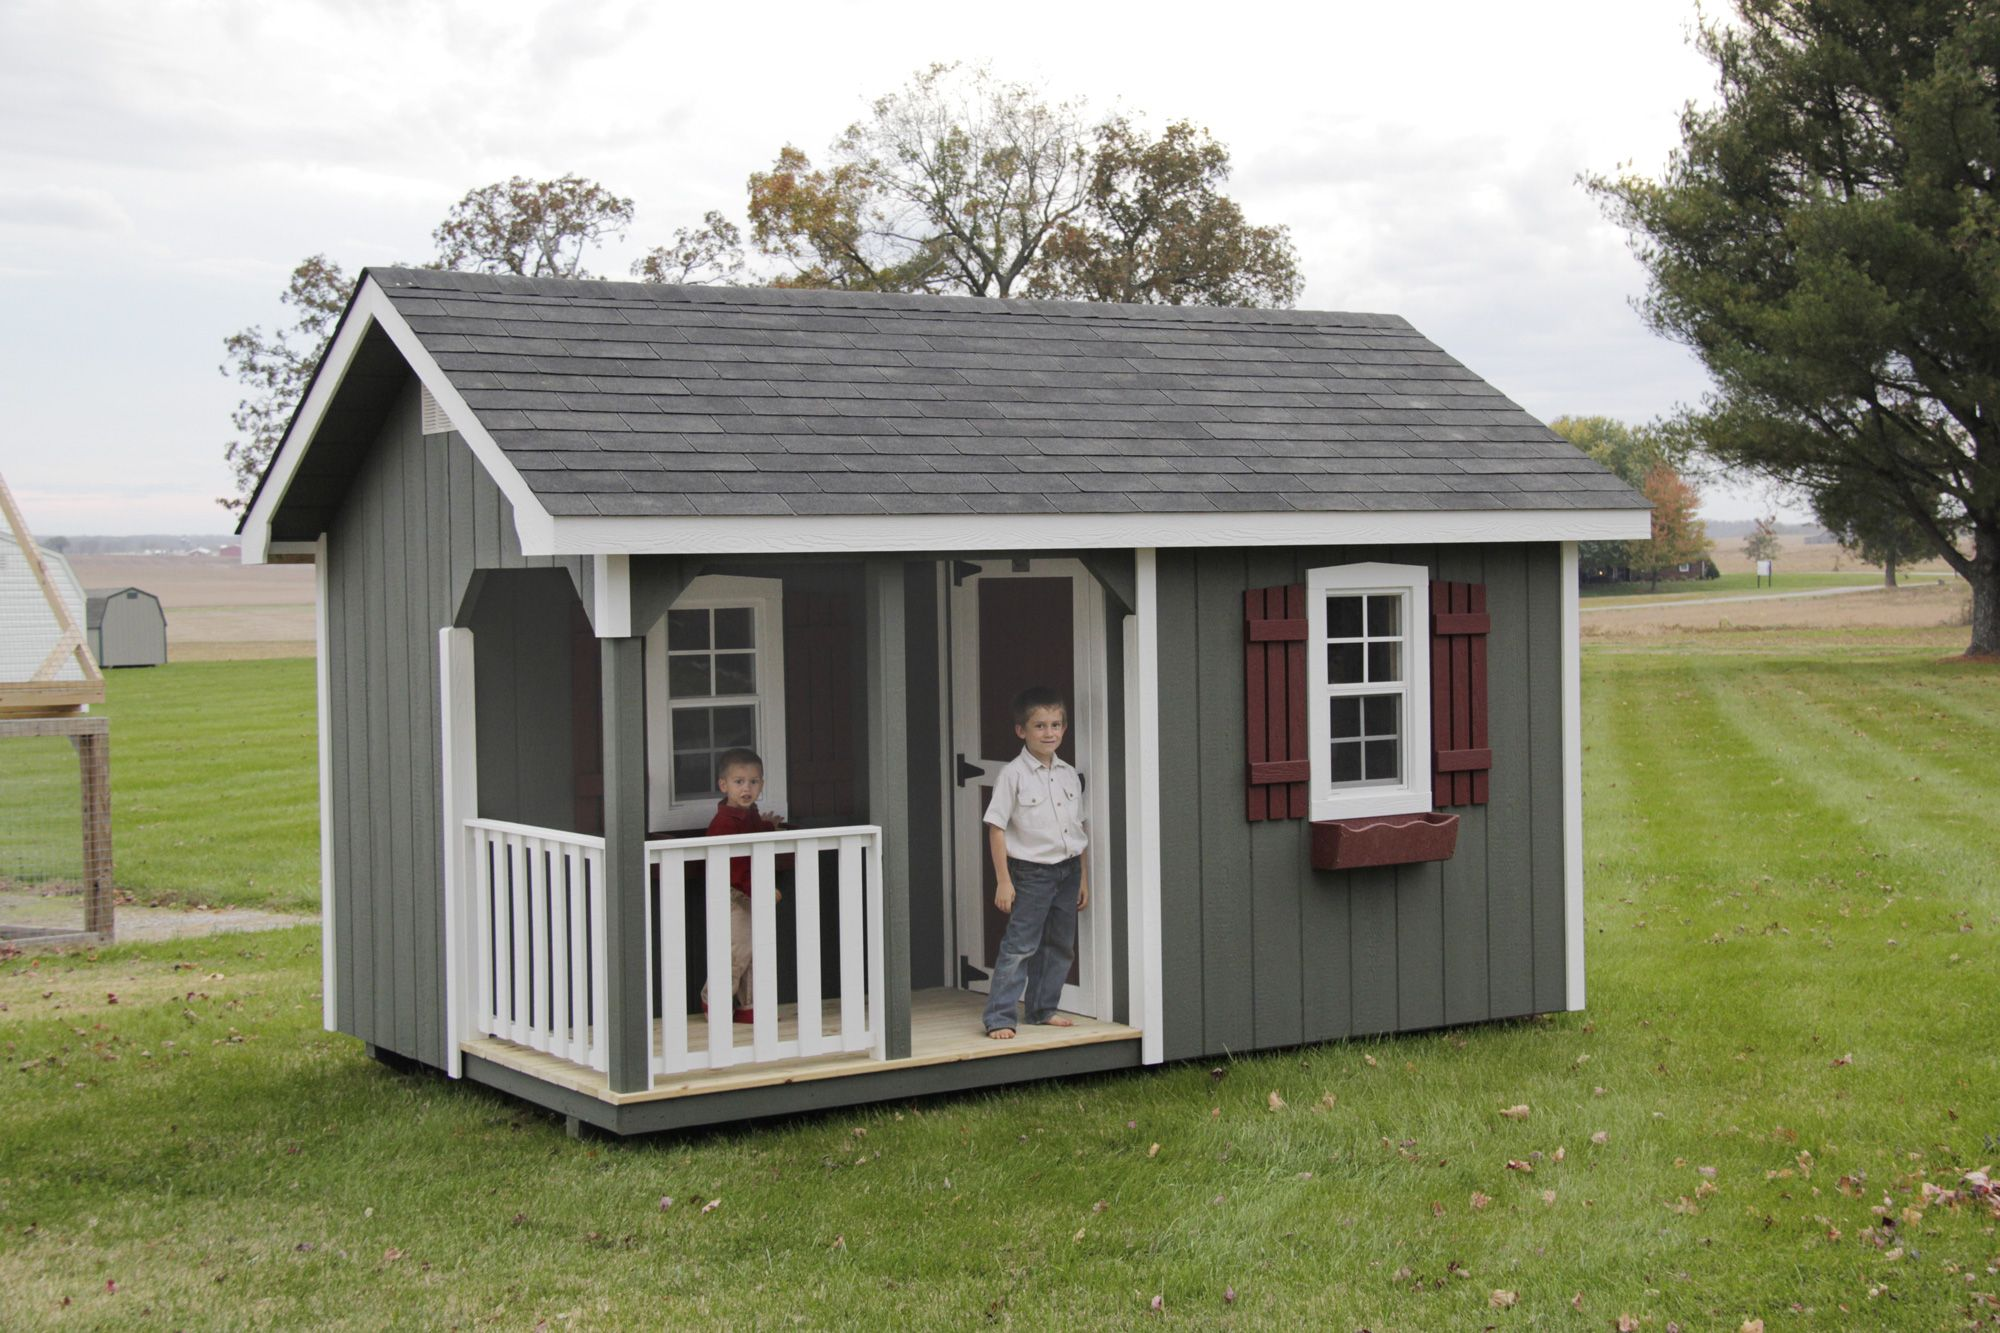 an a roof style outdoor kids playhouse with green wooden siding